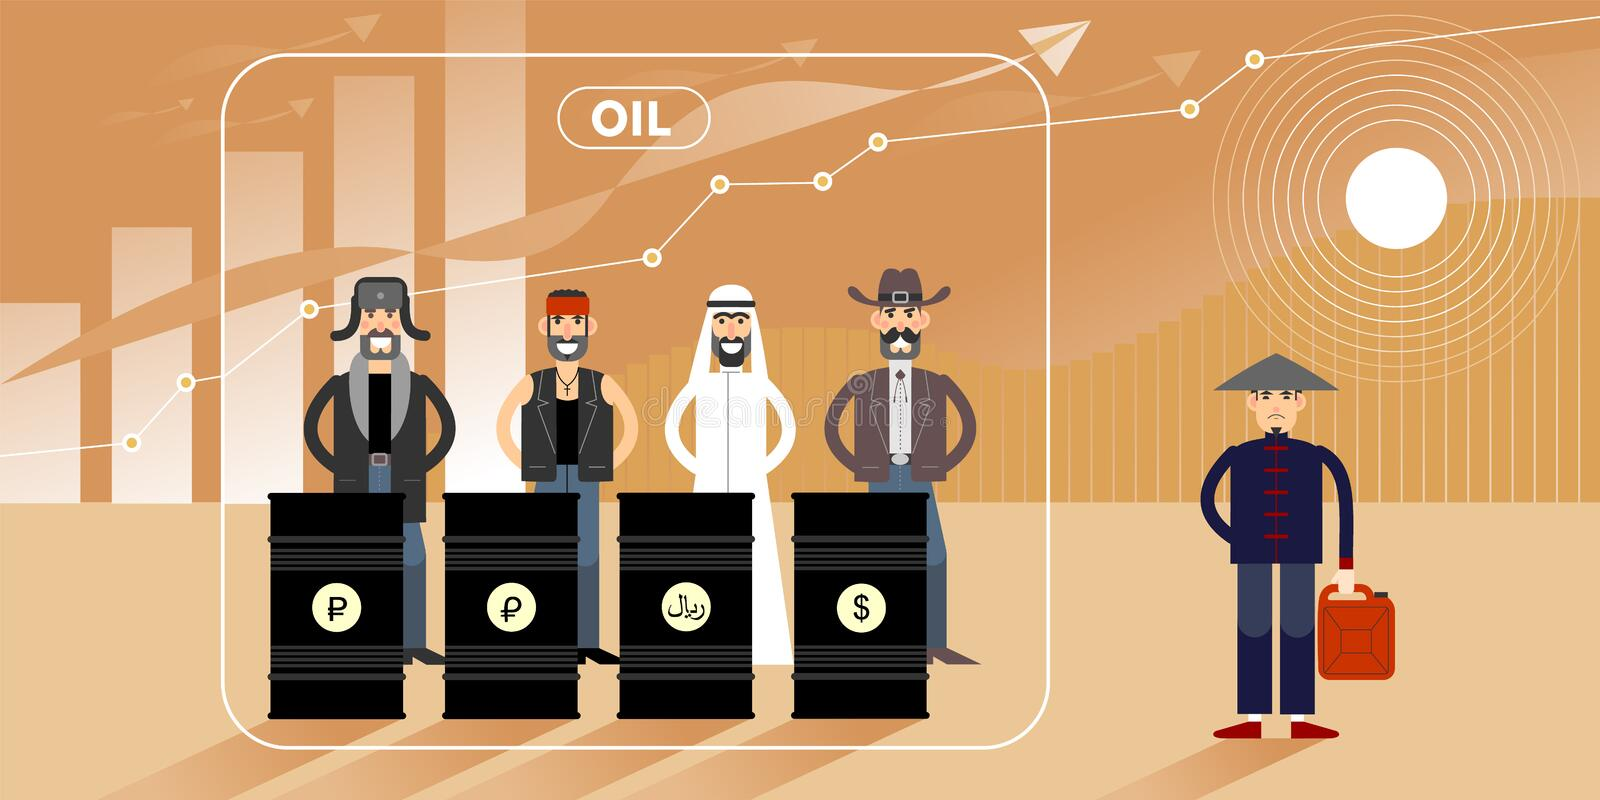 Oil price chart illustration with personages. Oil price growth chart illustration with different national character personages stock illustration